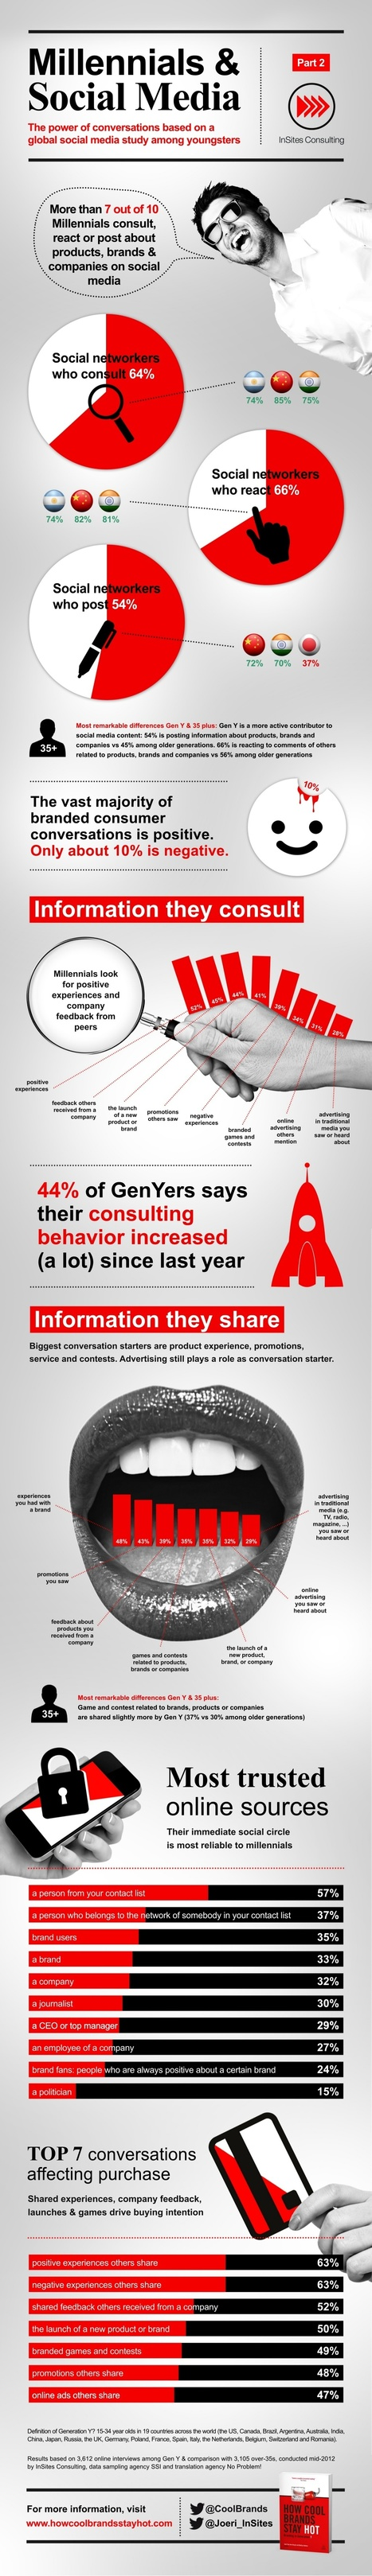 Millennials Are the Most Marketing-Savvy Generation Ever [INFOGRAPHIC] | MarketingHits | Scoop.it